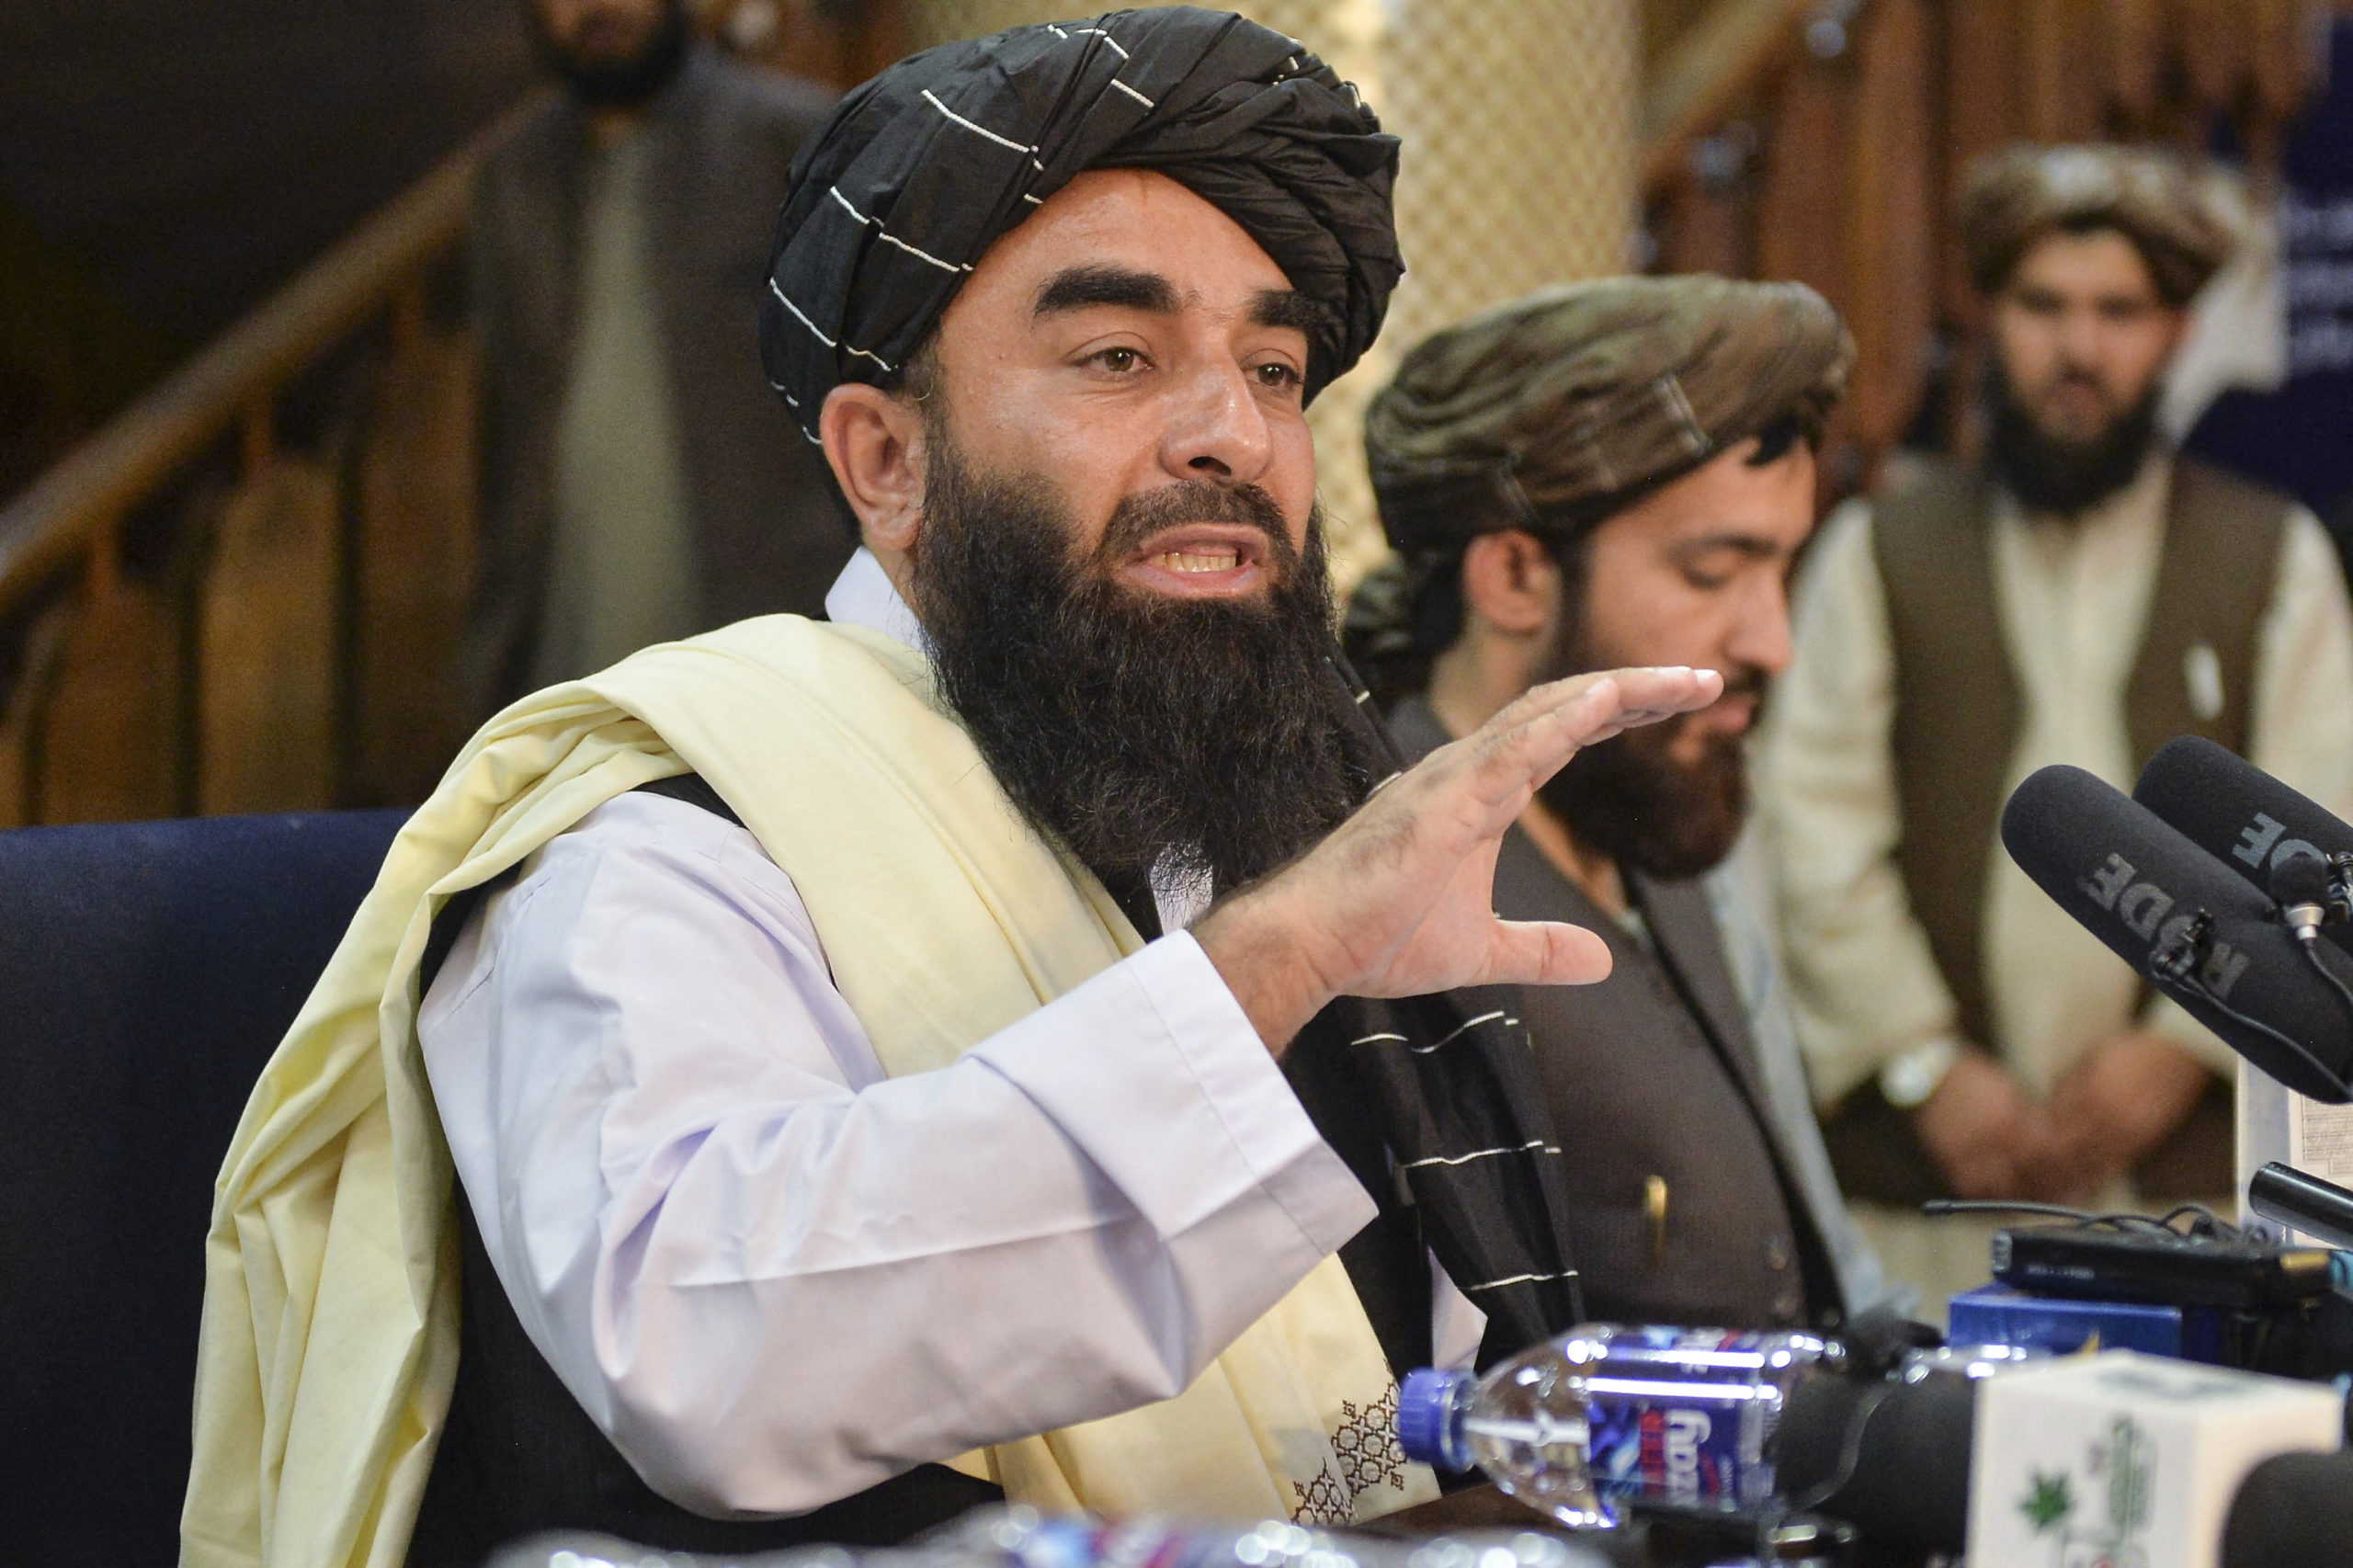 Taliban spokesman Zabihullah Mujahid speaks during a press conference in Kabul, Afghanistan on Tuesday. (Hoshang Hashimi/AFP via Getty Images)